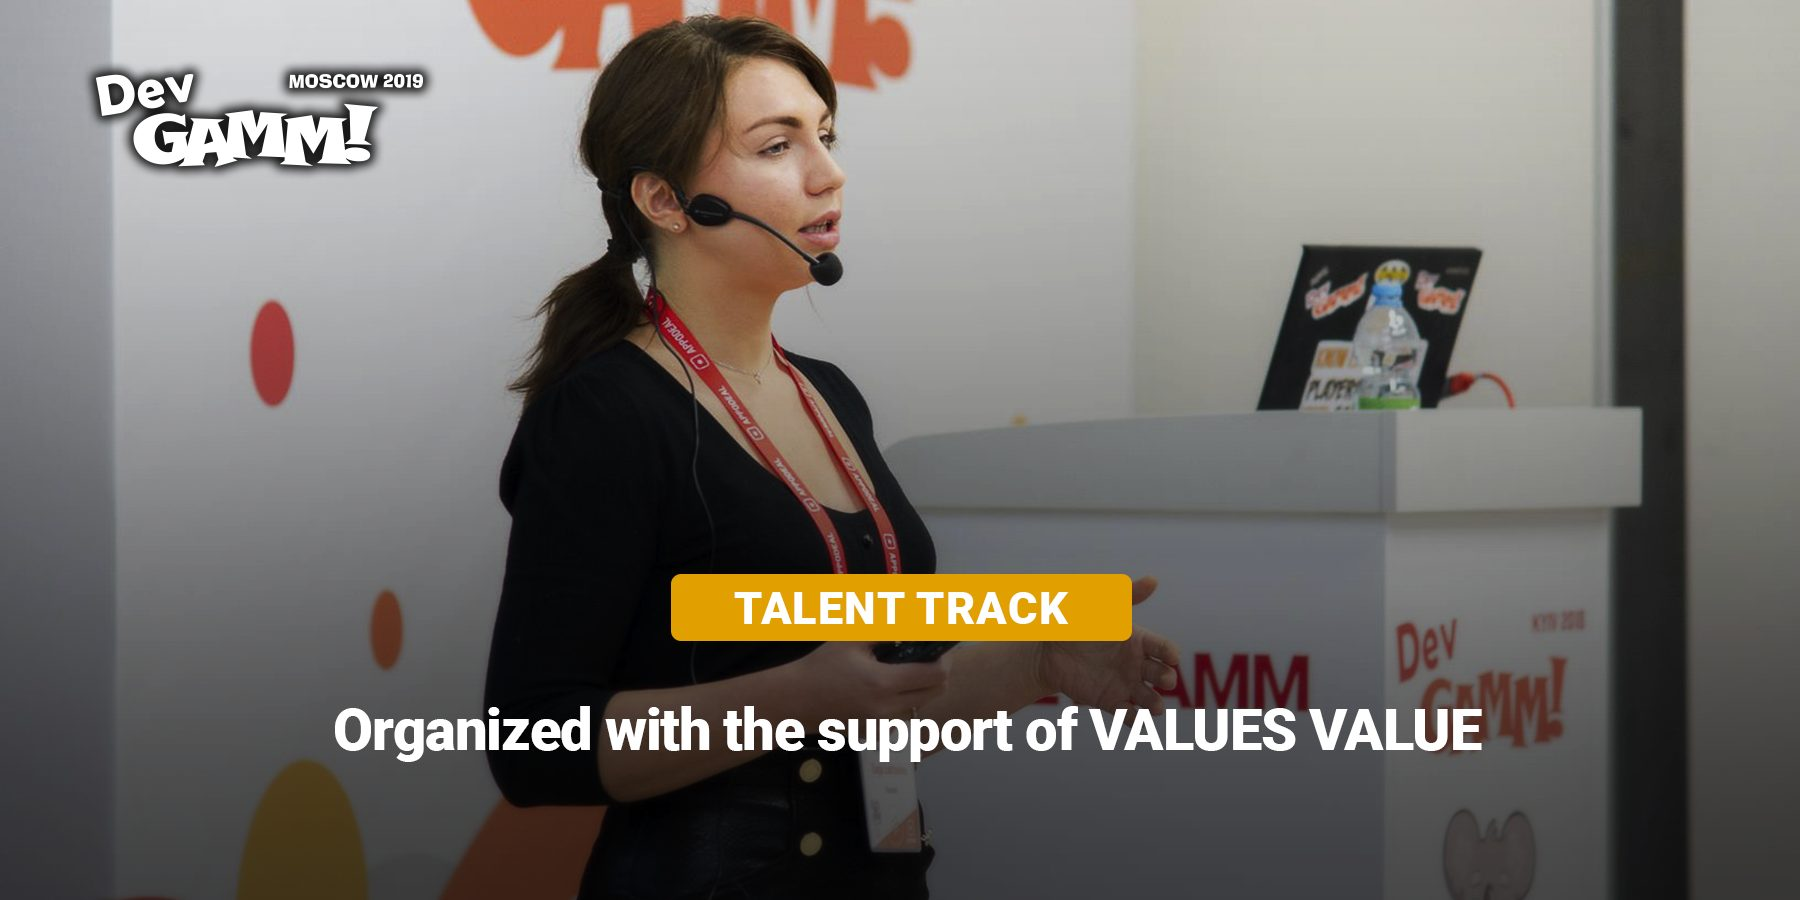 Talent Track at DevGAMM Moscow